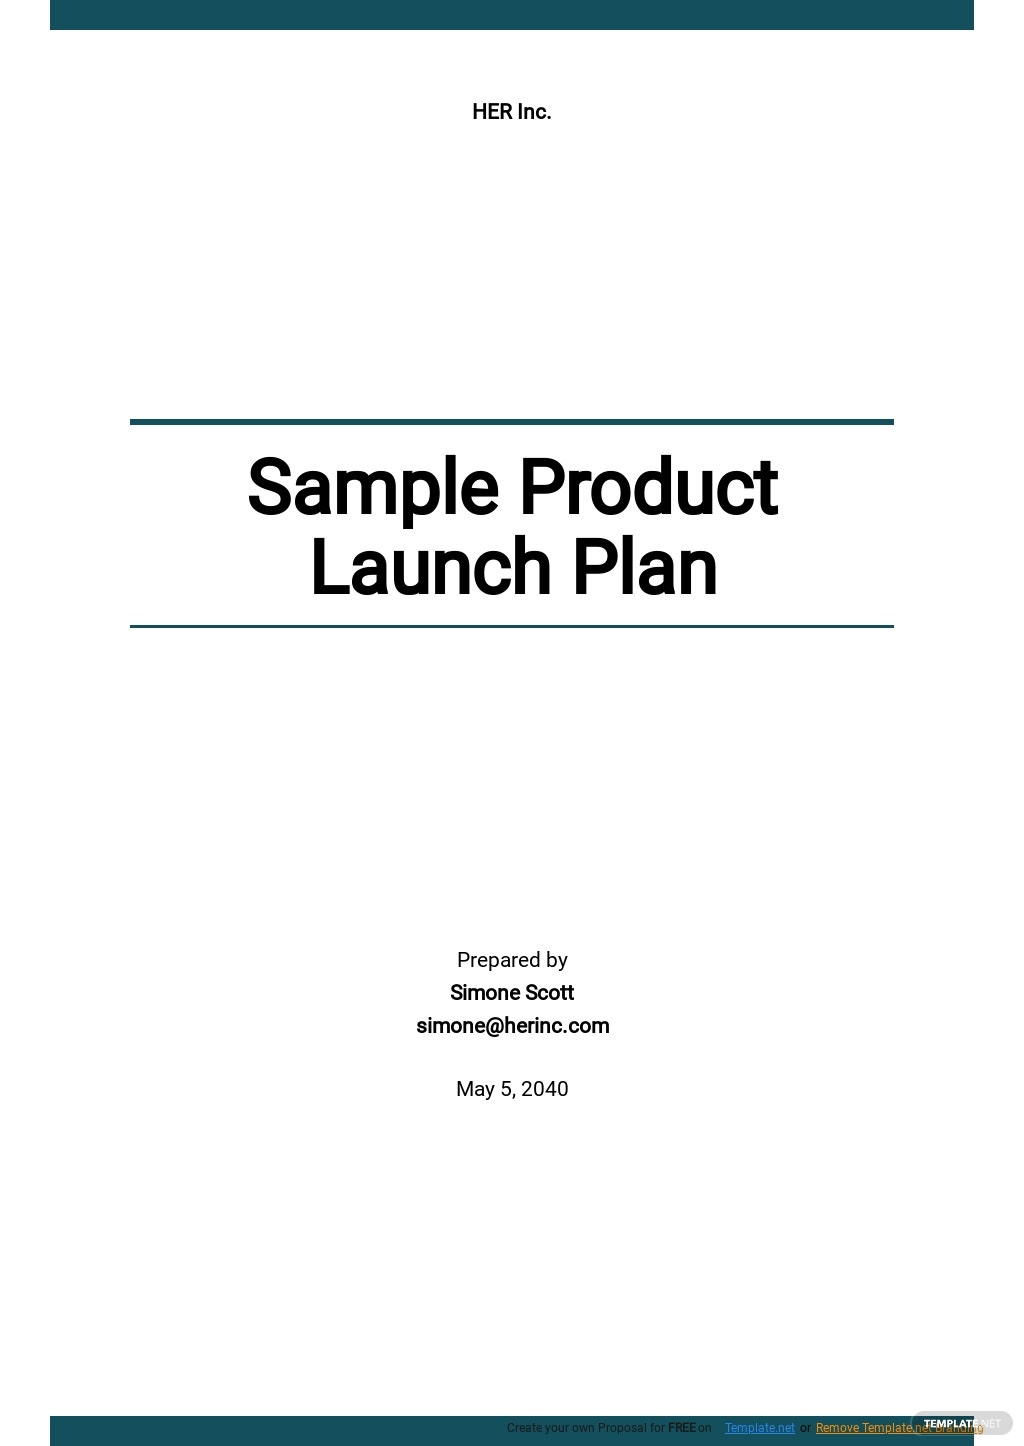 Free Sample Product Launch Plan Template.jpe